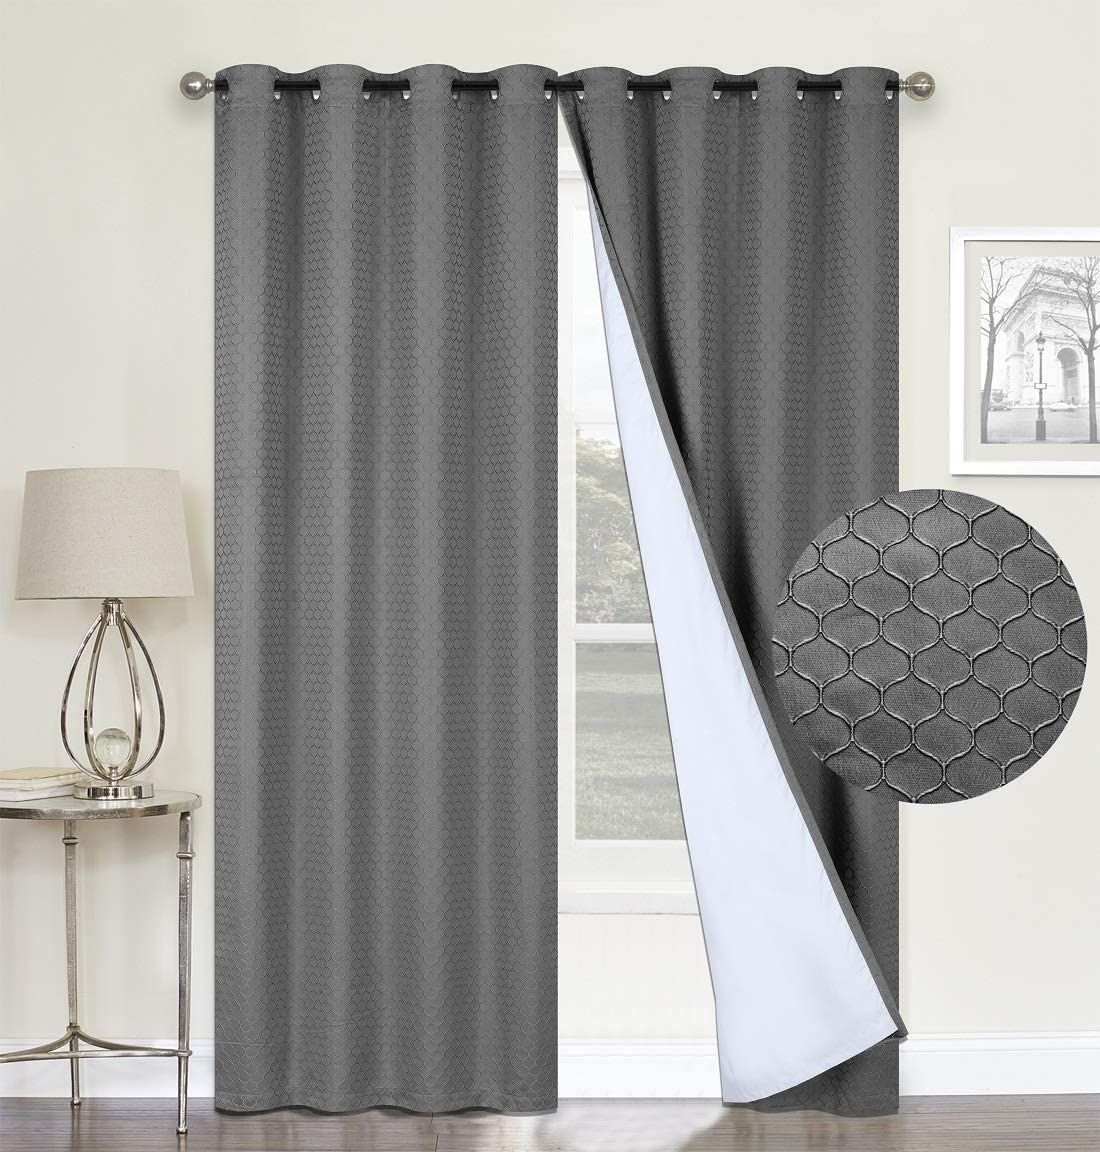 100 Blackout Curtains,Grey Double Layer Lined,Heat and Full Light Blocking Drapes with White Liner for Nursery, 96 inches Drop Thermal Insulated Draperies Charcoal Grey, 52 x 96